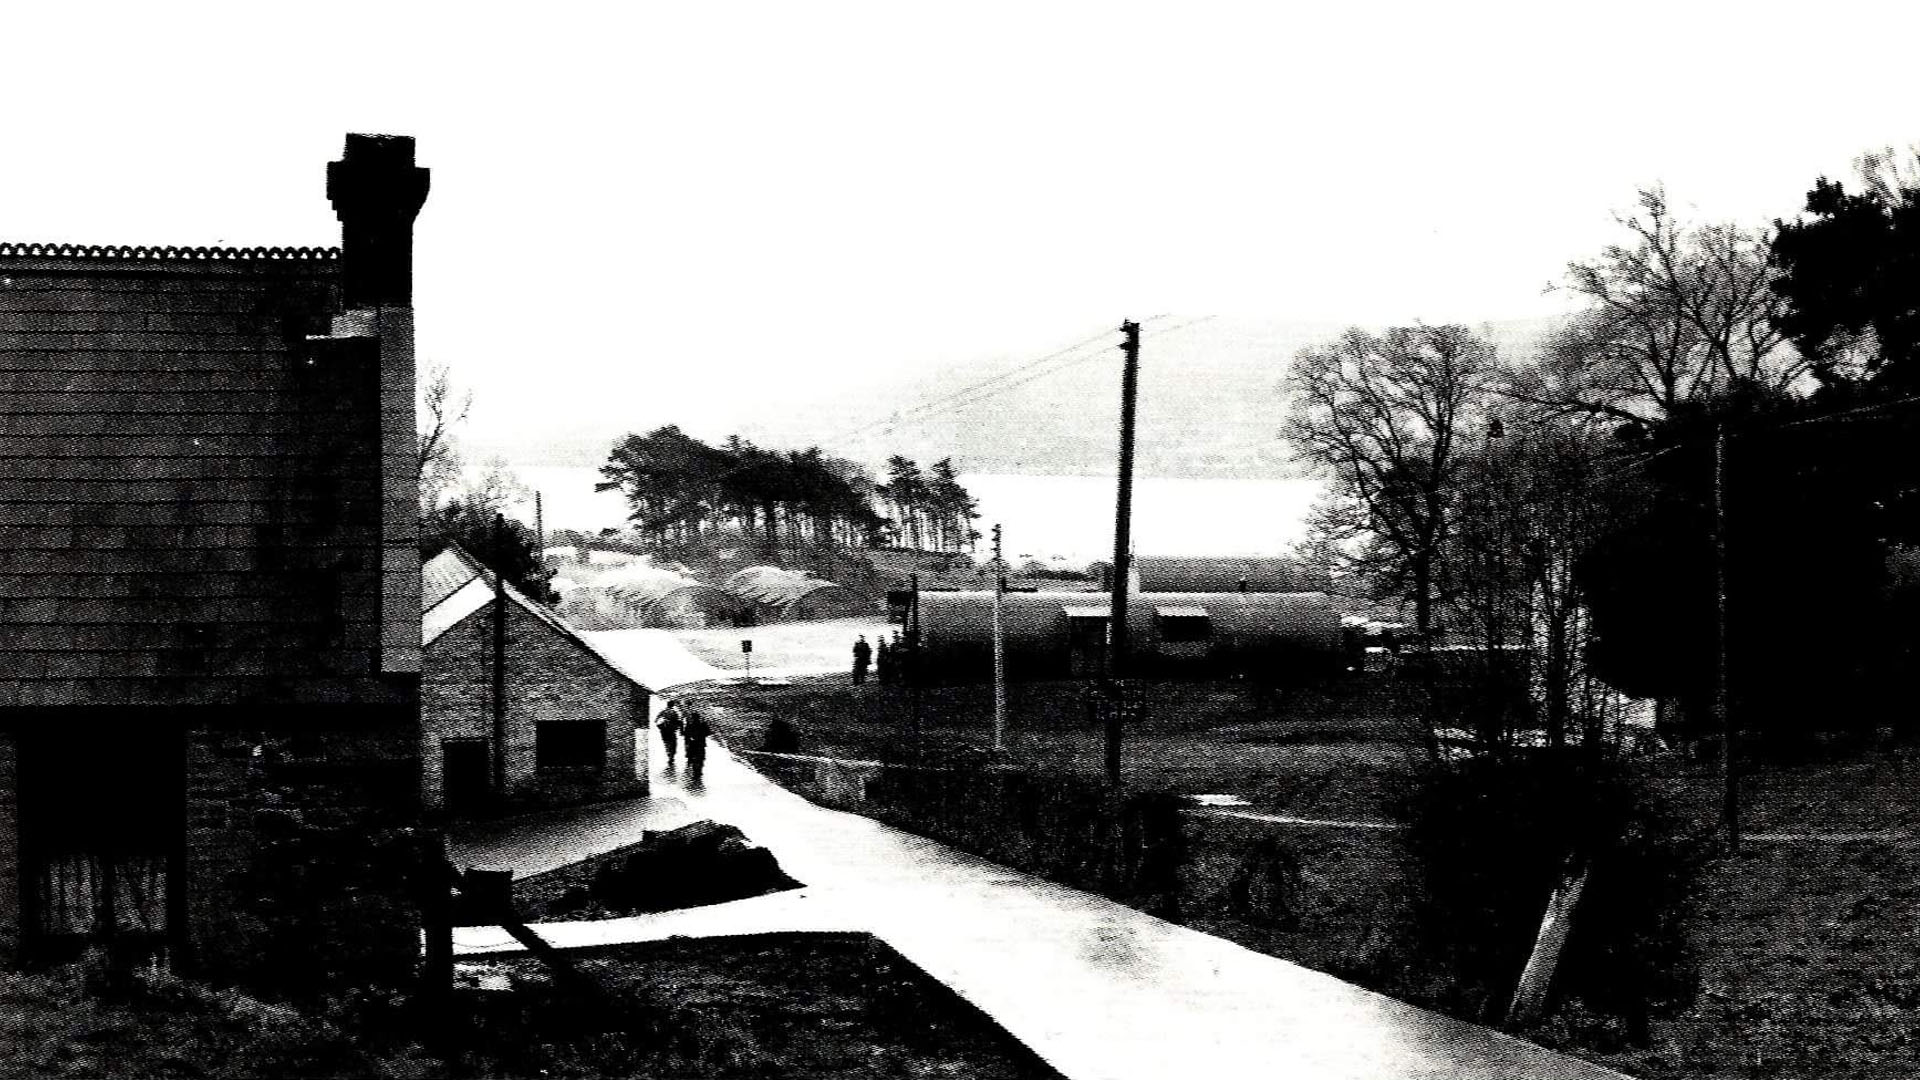 US Army Camp at Ballyedmund, Co. Down